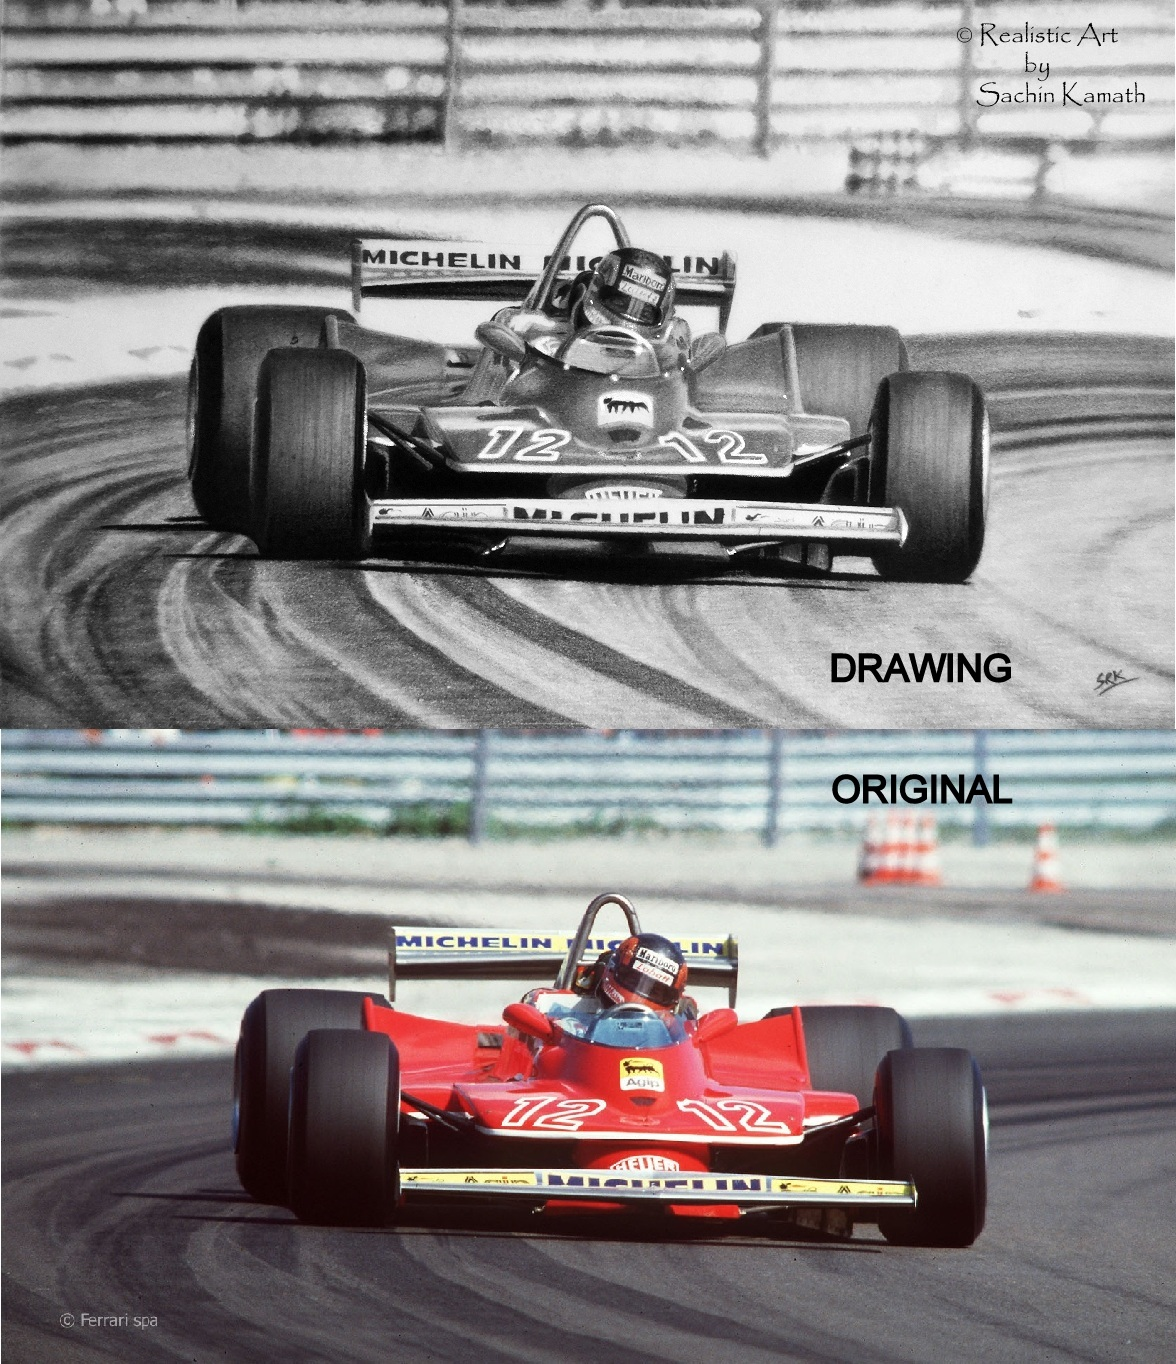 'FLAT OUT' Compare#1 by realisticartsachin